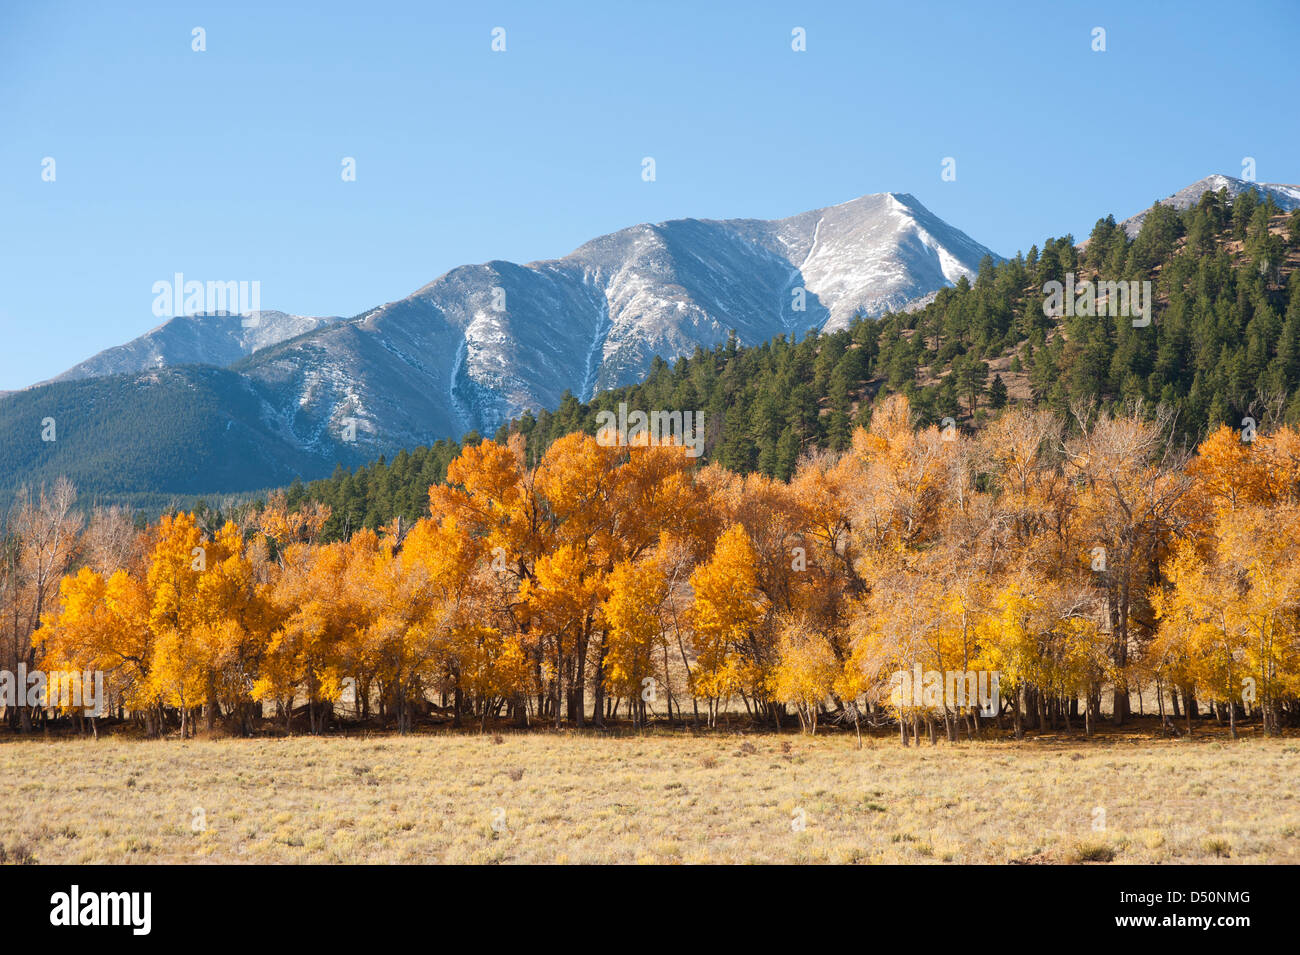 A mountainside full of evergreens with a dusting of snow on Mount Princeton in the background complete this autumn - Stock Image